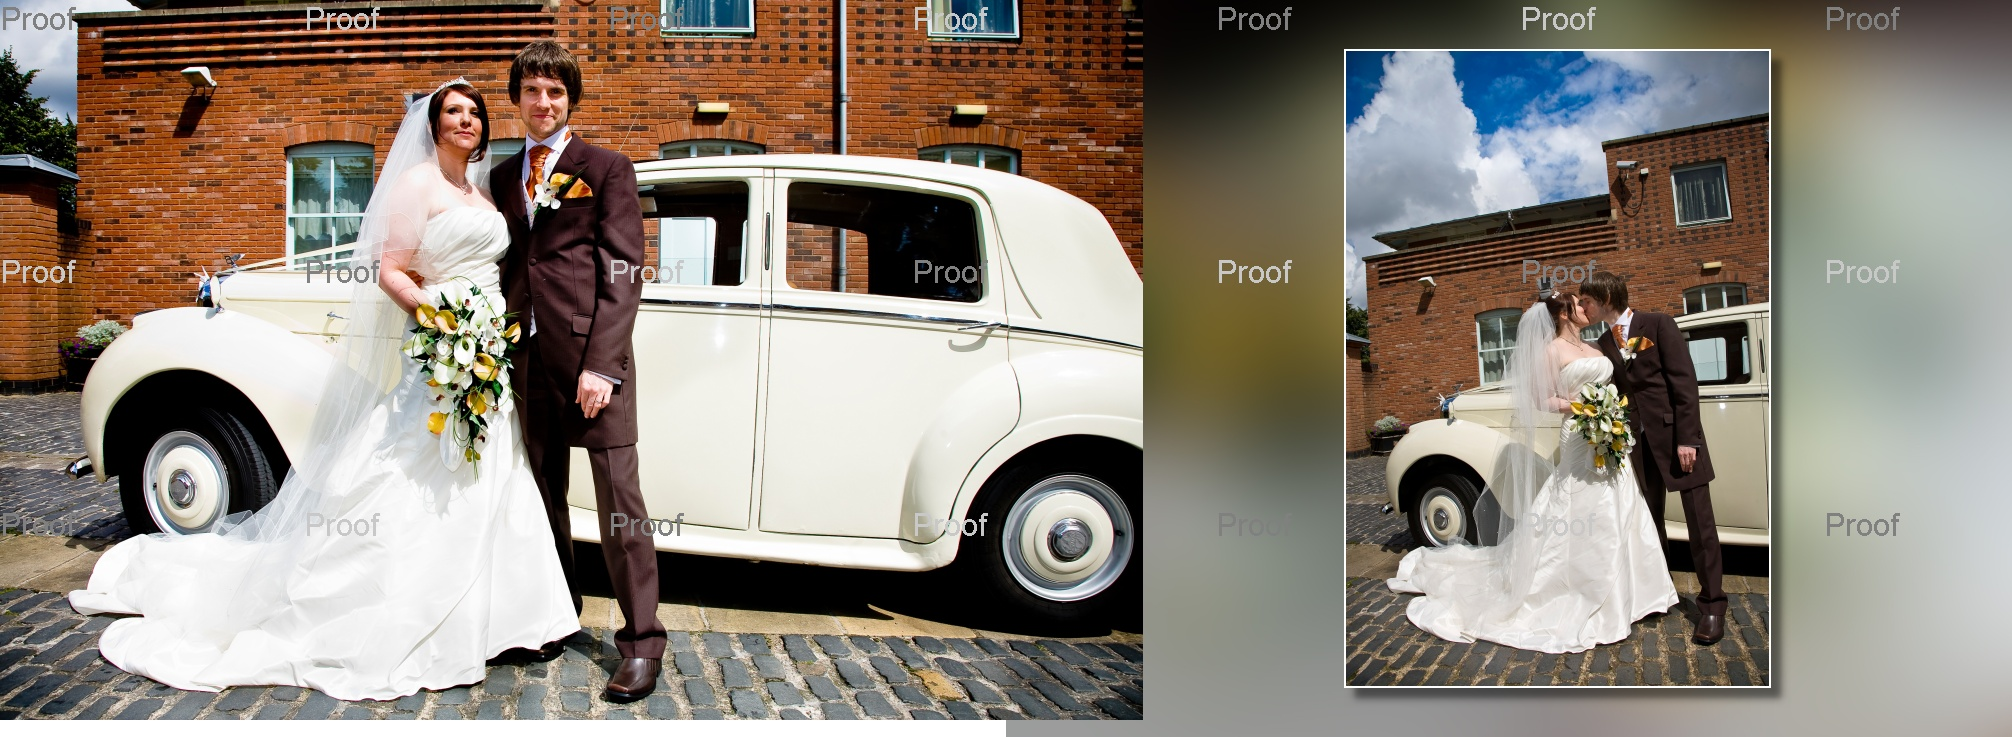 pages 36-37 of wedding storybook album design as bride and groom arrive at Chancellors Hotel & Conference Centre